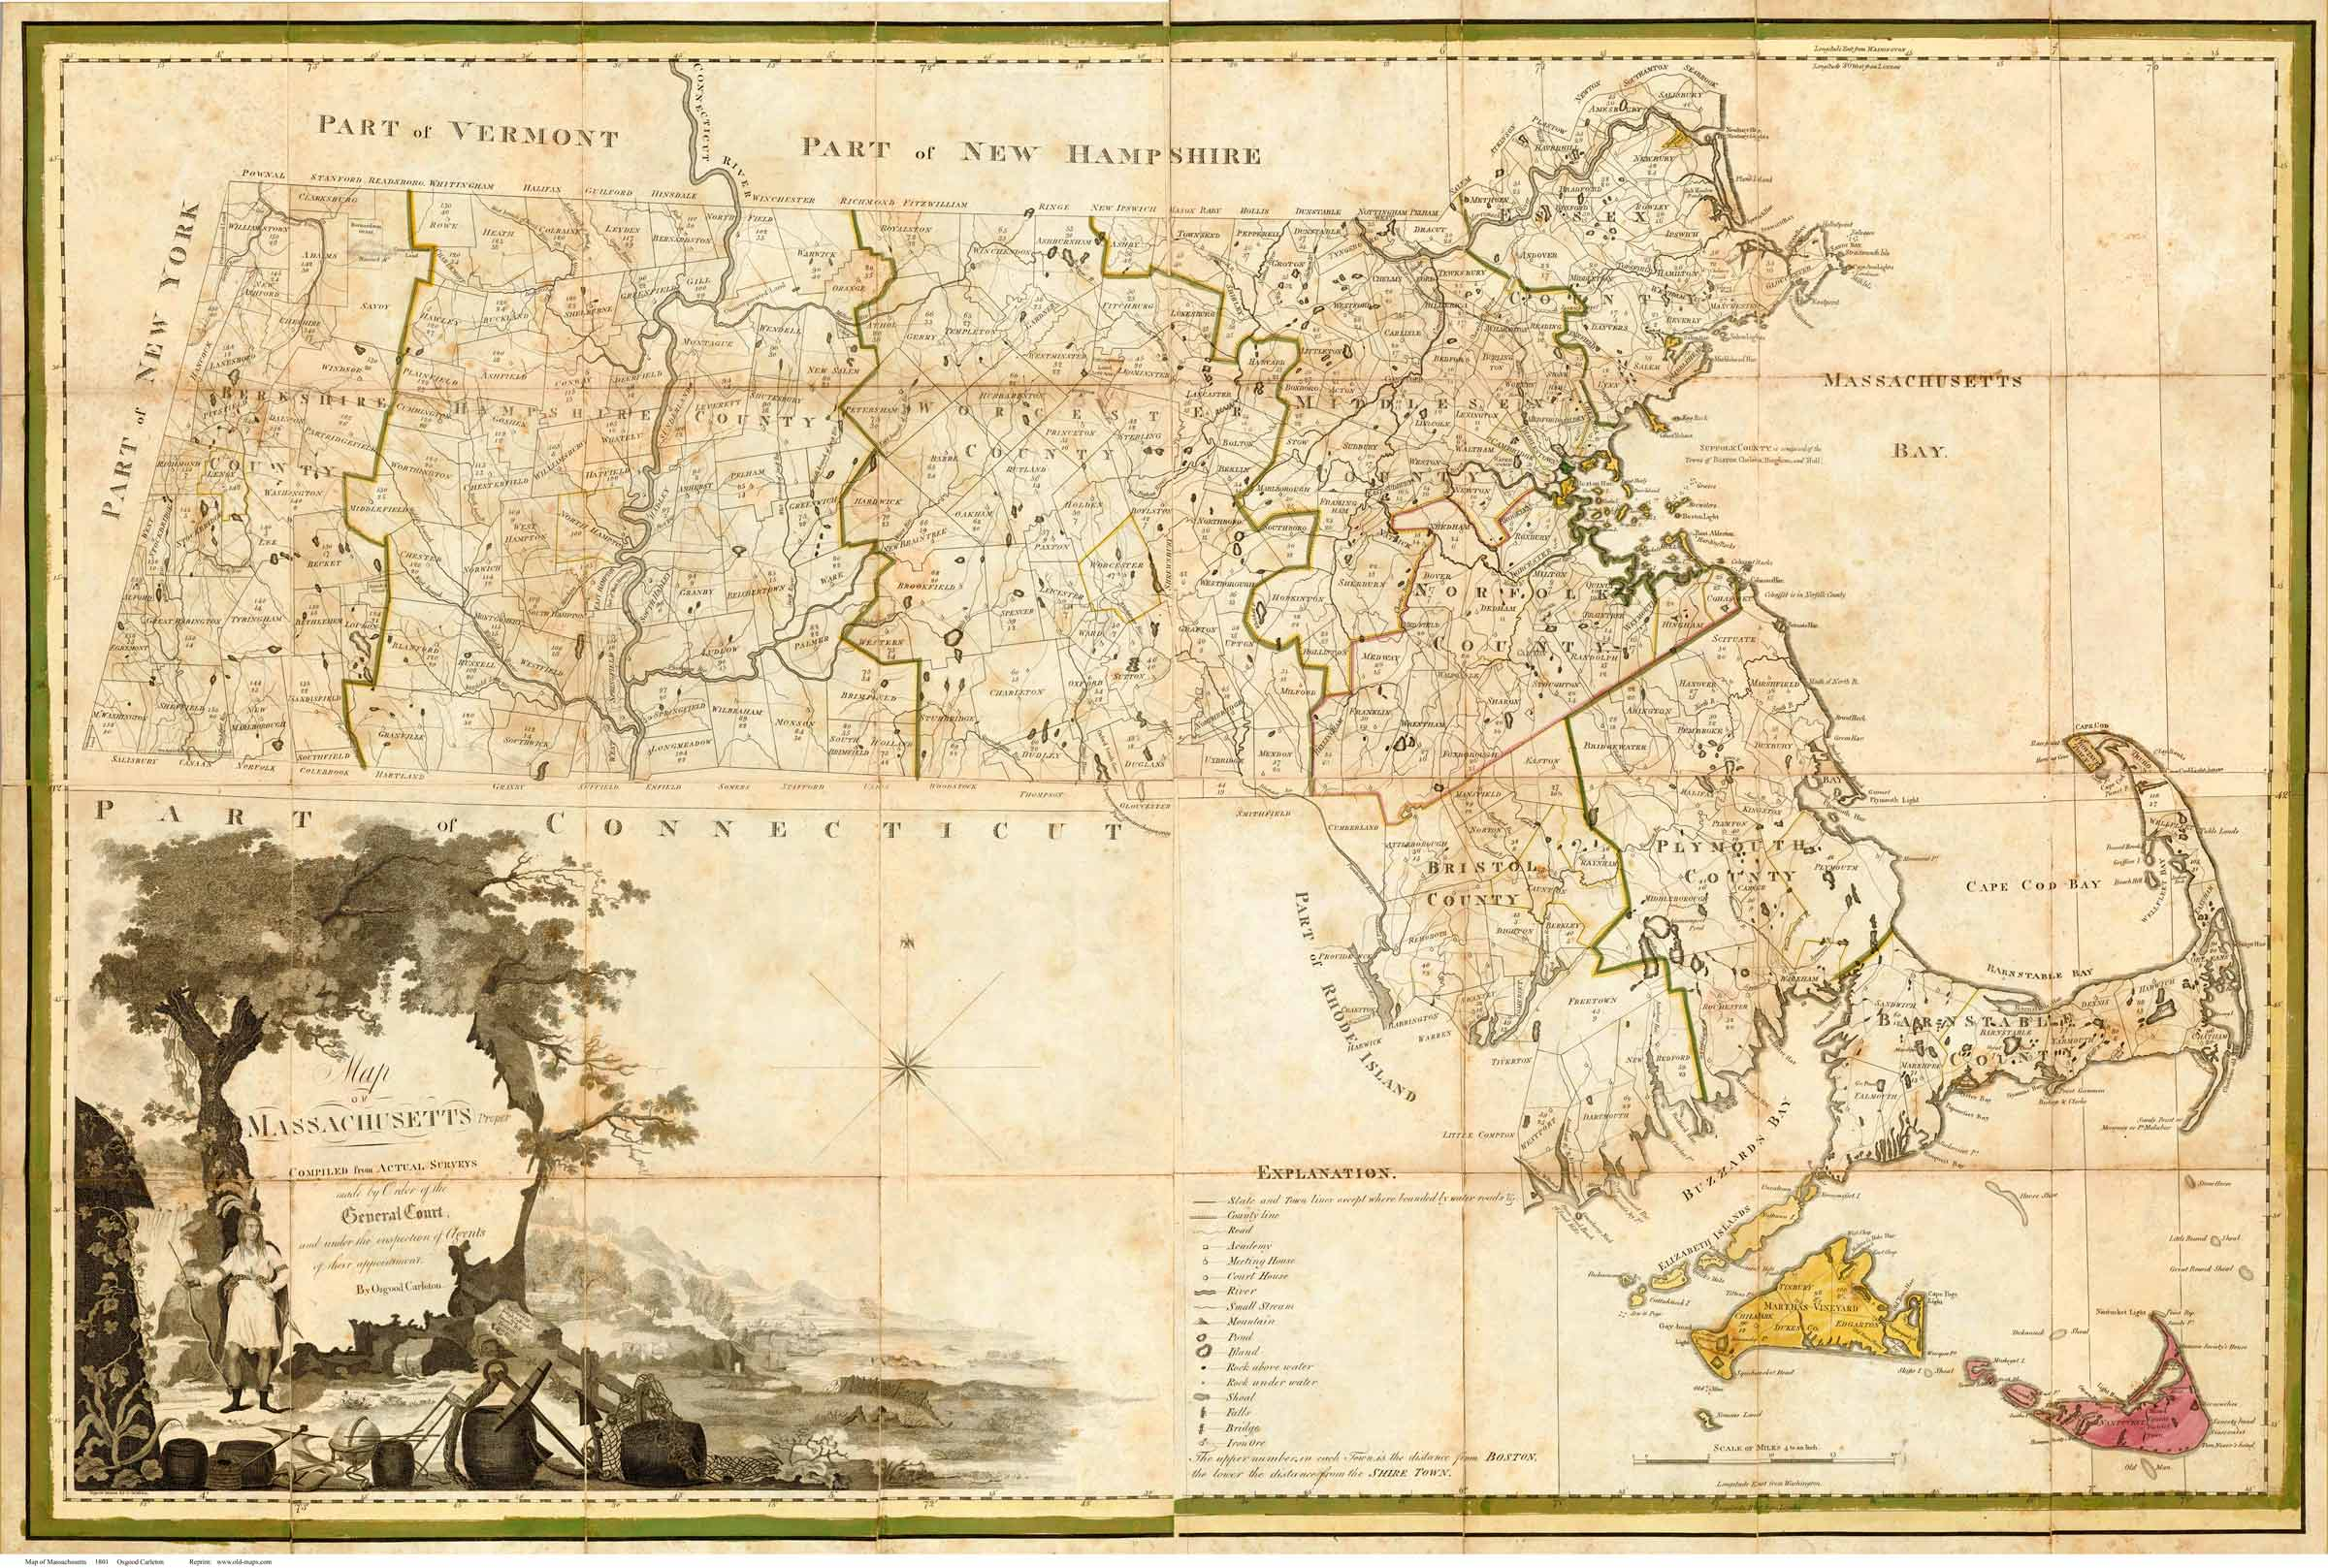 Prints of Old Massachusetts State Maps 1801 Carleton   Full State Map see separate page